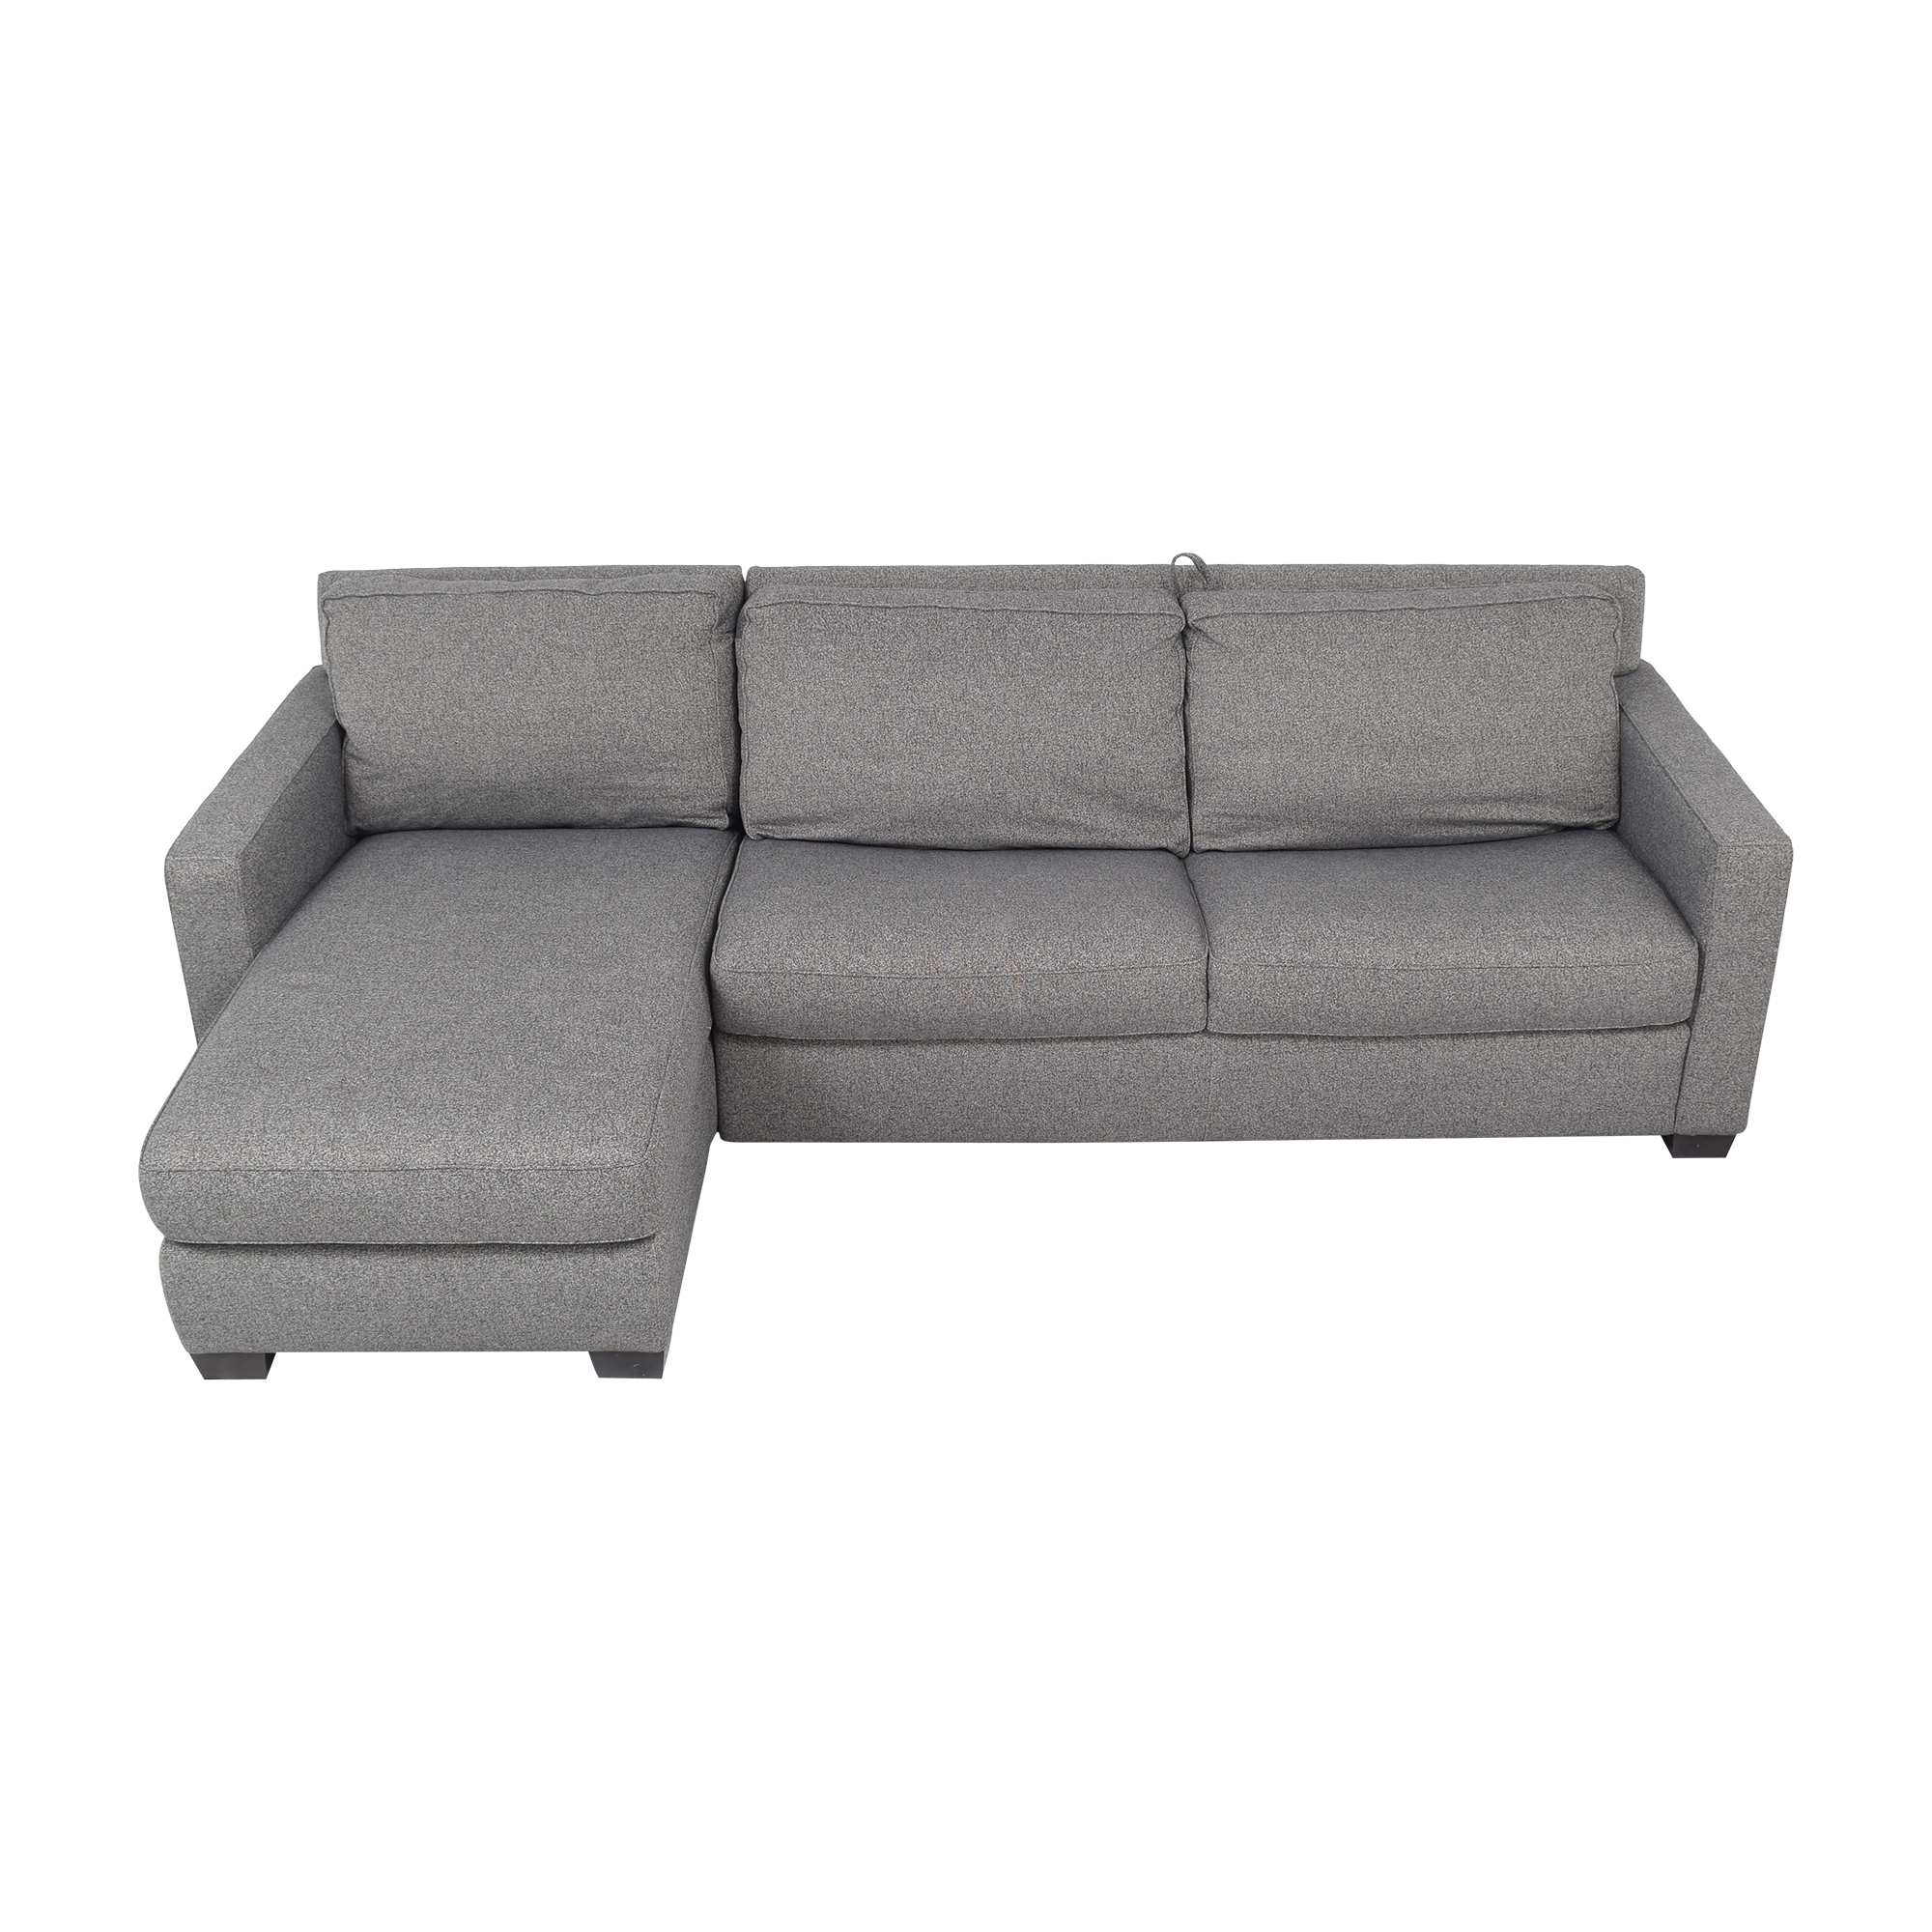 West Elm West Elm Henry 2-Piece Chaise Sectional pa